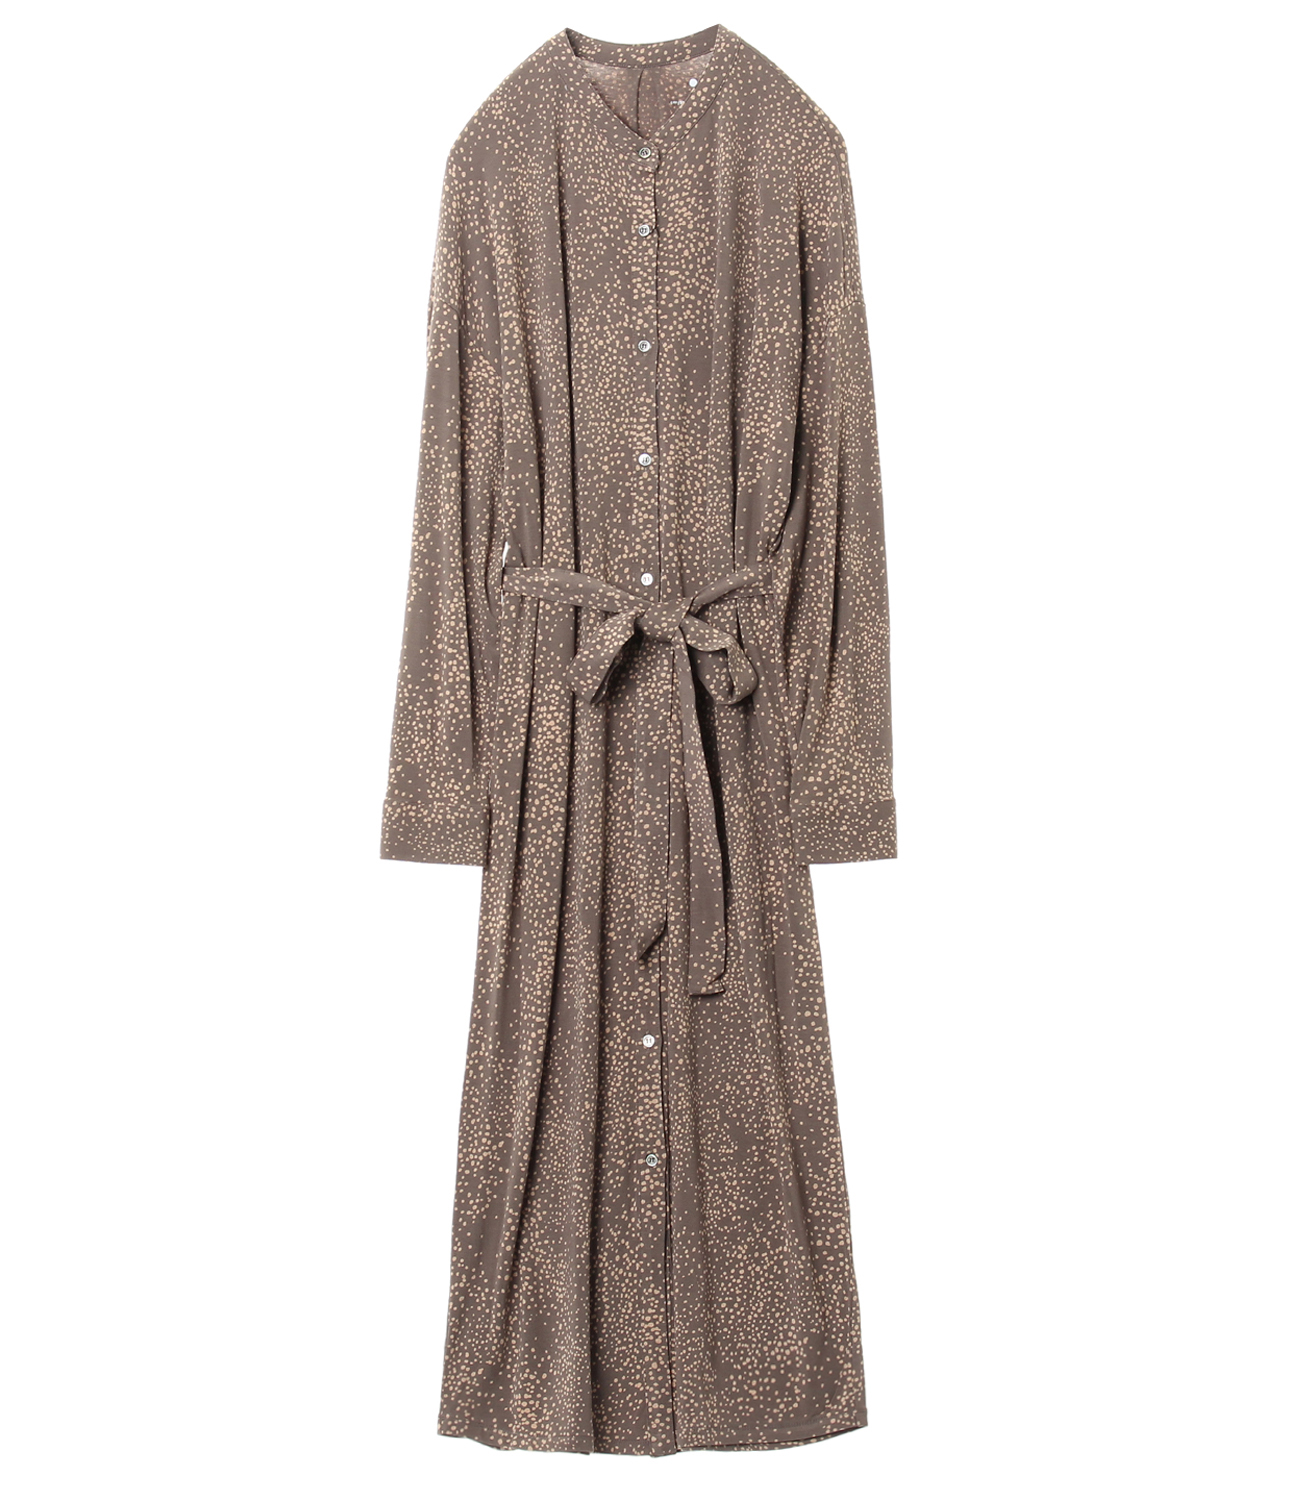 Dot print long shirt dress 詳細画像 soft brown multi 1